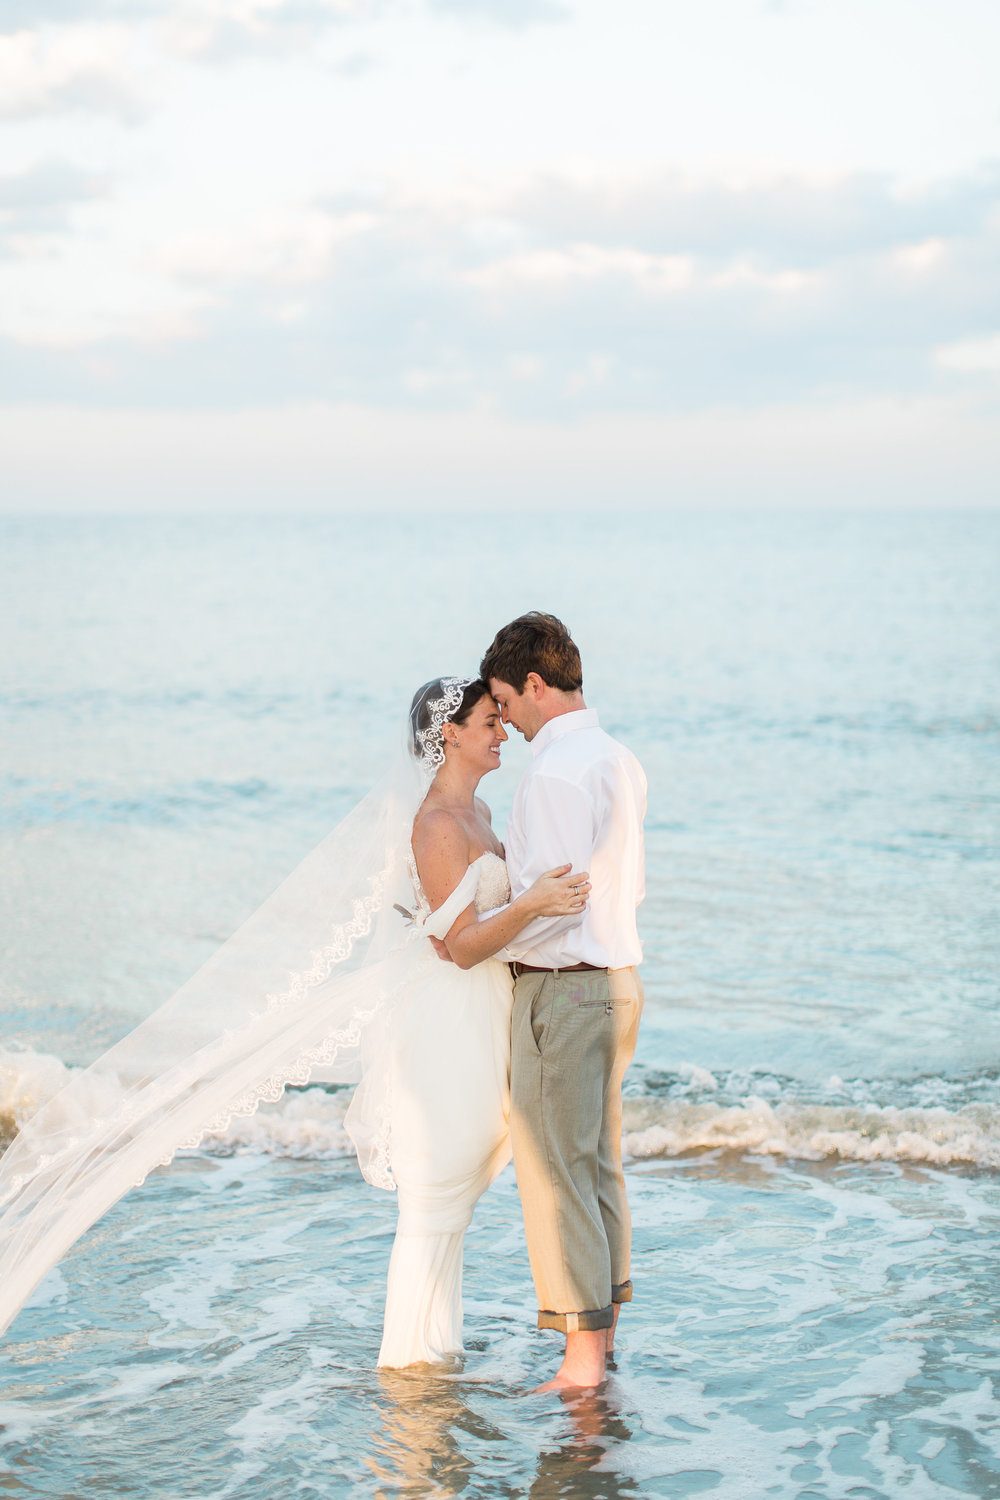 marianne-lucille-photography-jleslie-decor-tybee-wedding-sunset-wedding-beach-wedding-savannah-beach-wedding-sarah-seven-hayes-savannah-bridal-boutique-savannah-wedding-dresses-savannah-bridal-gowns-savannah-weddings-savannah-bridal-26.jpg